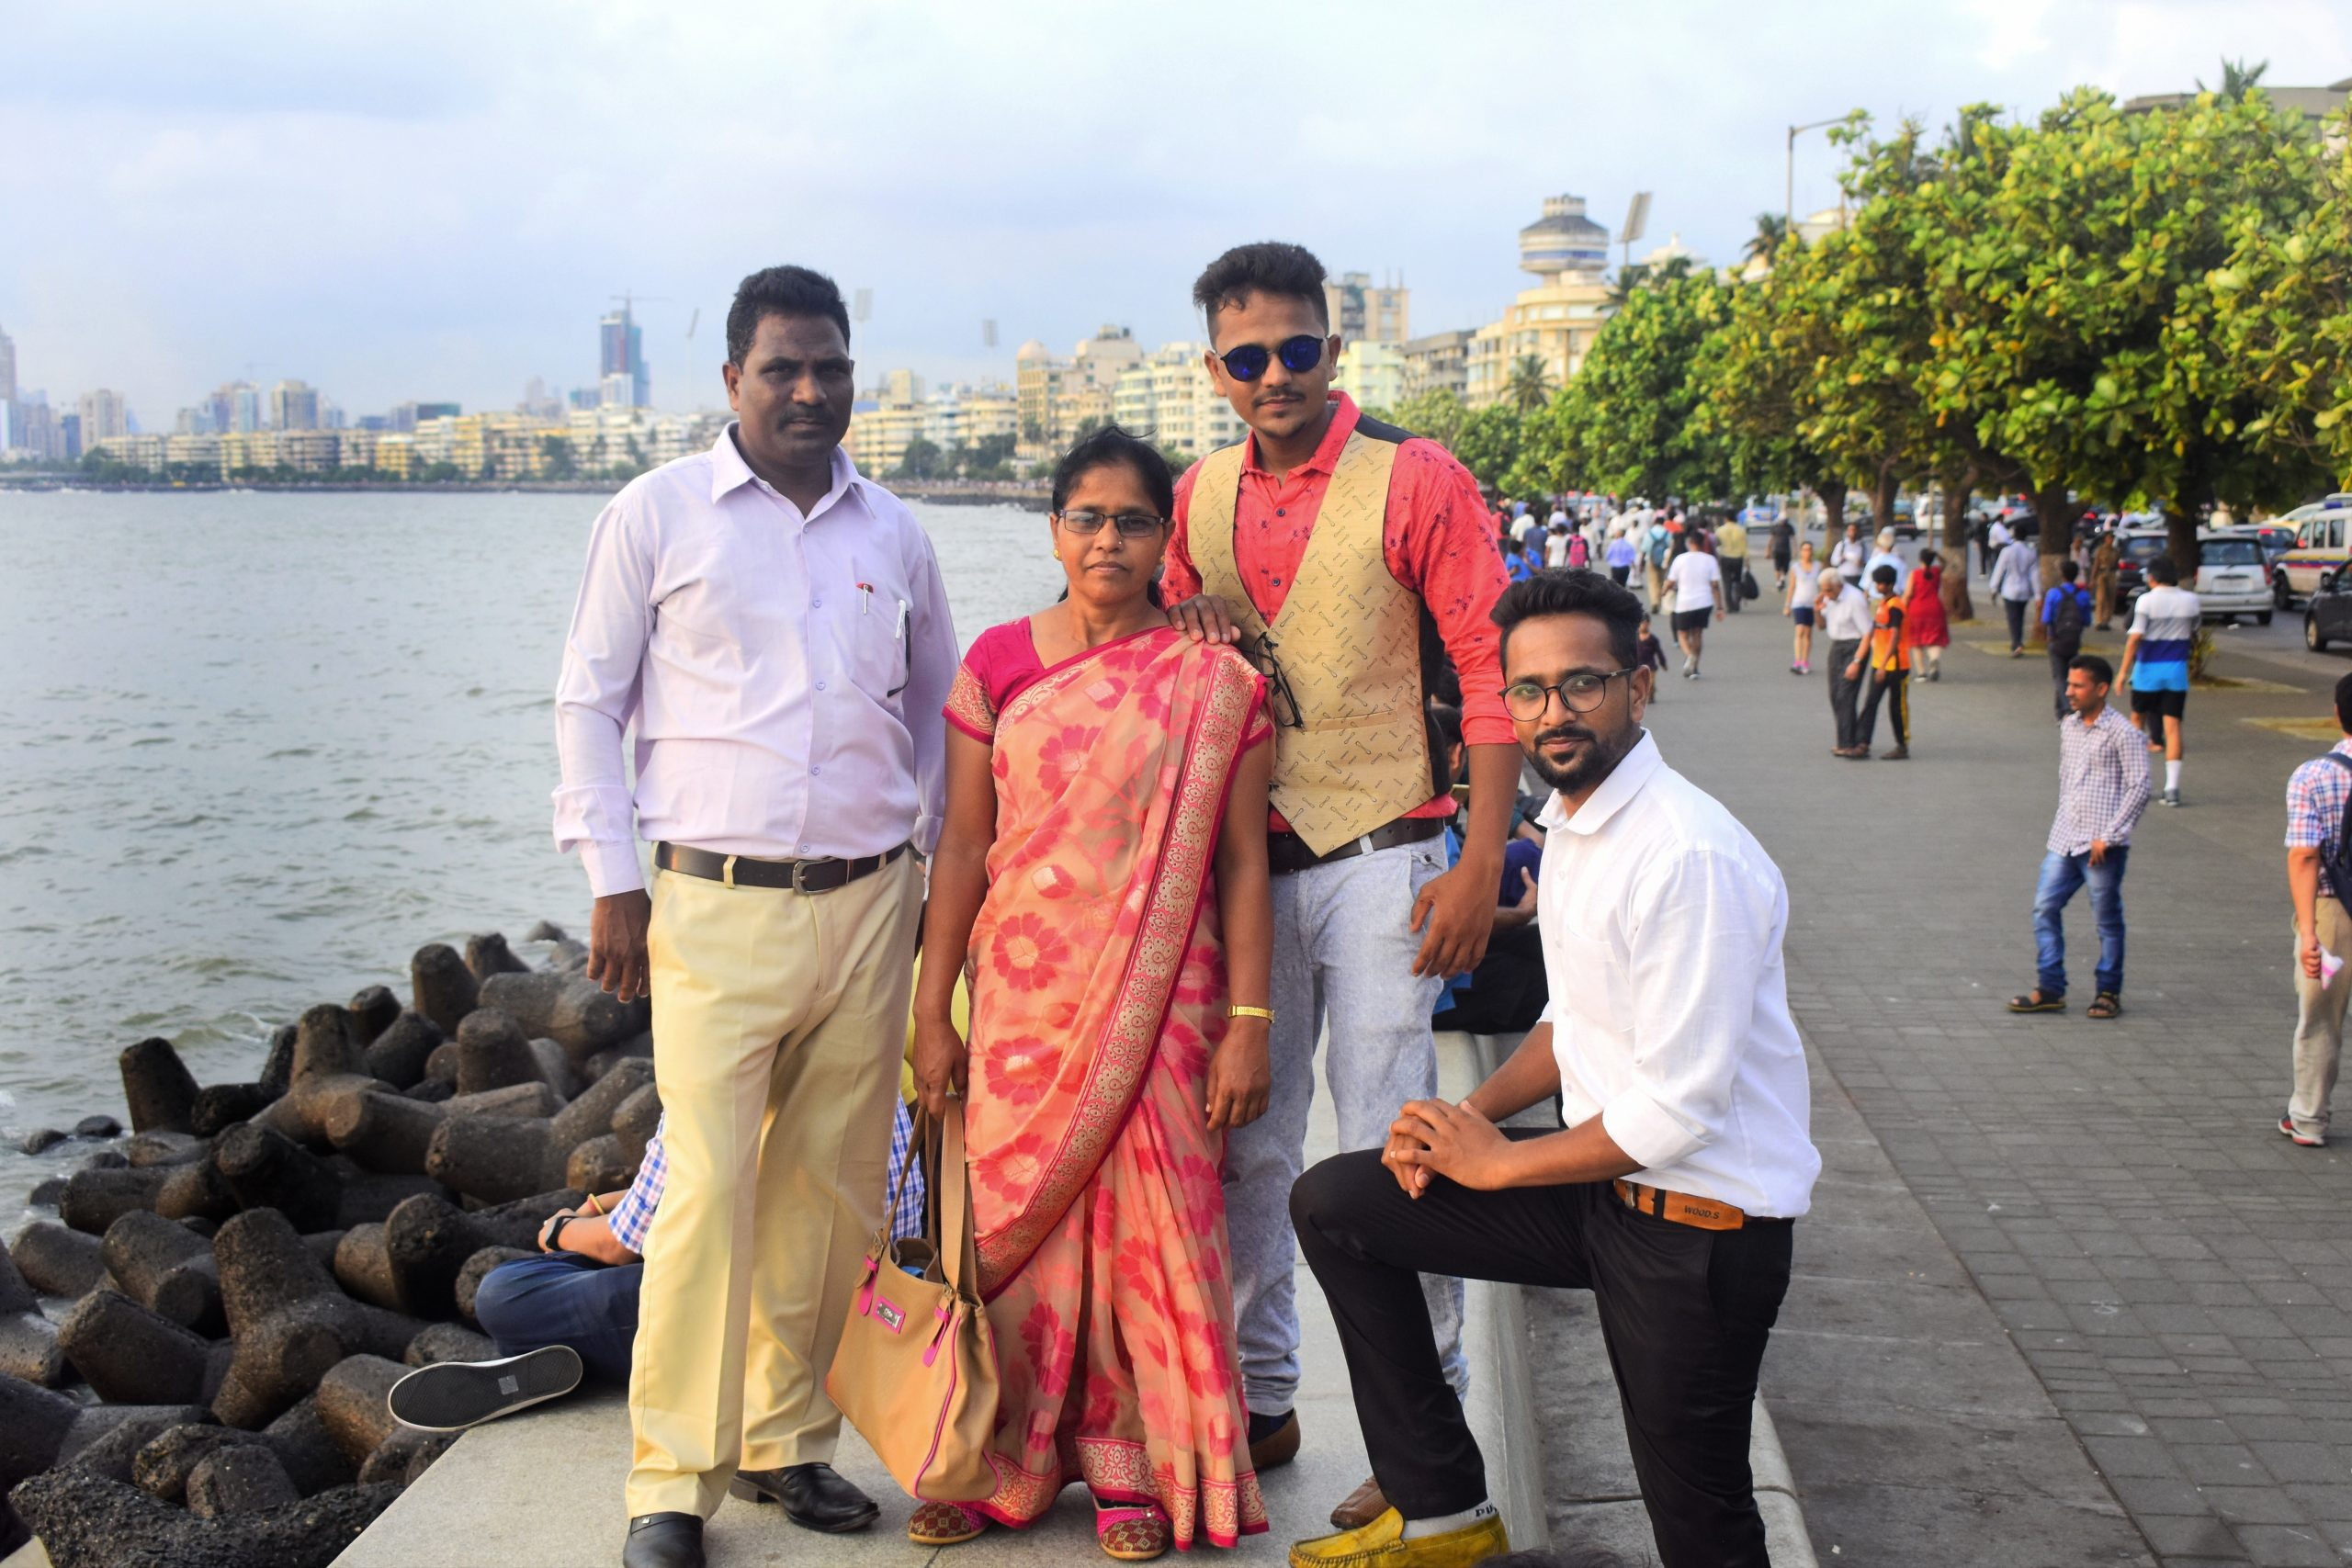 A family at Marine Drive in Mumbai